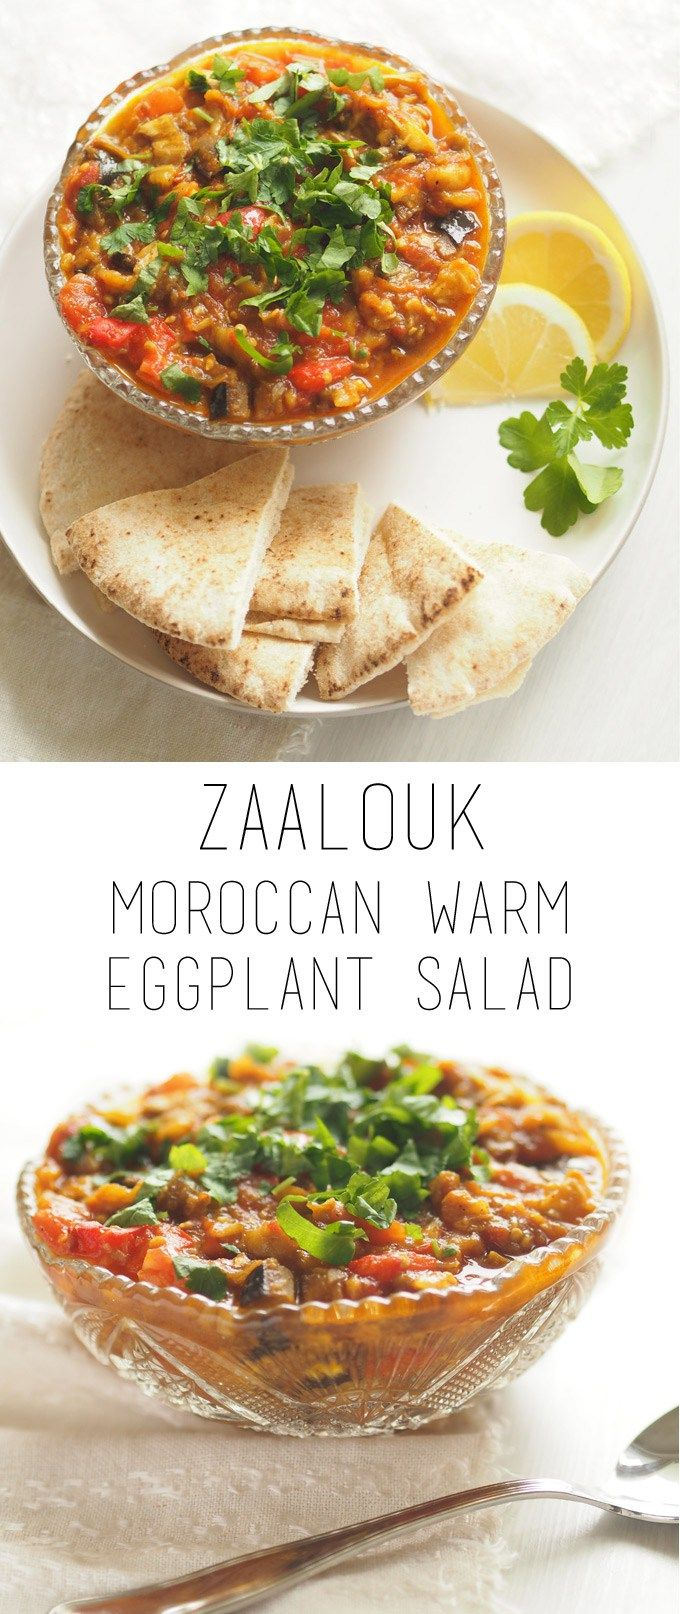 Zaalouk salad - Moroccan warm eggplant salad (vegan, gf). Also delicious as a dip with some pita bread.